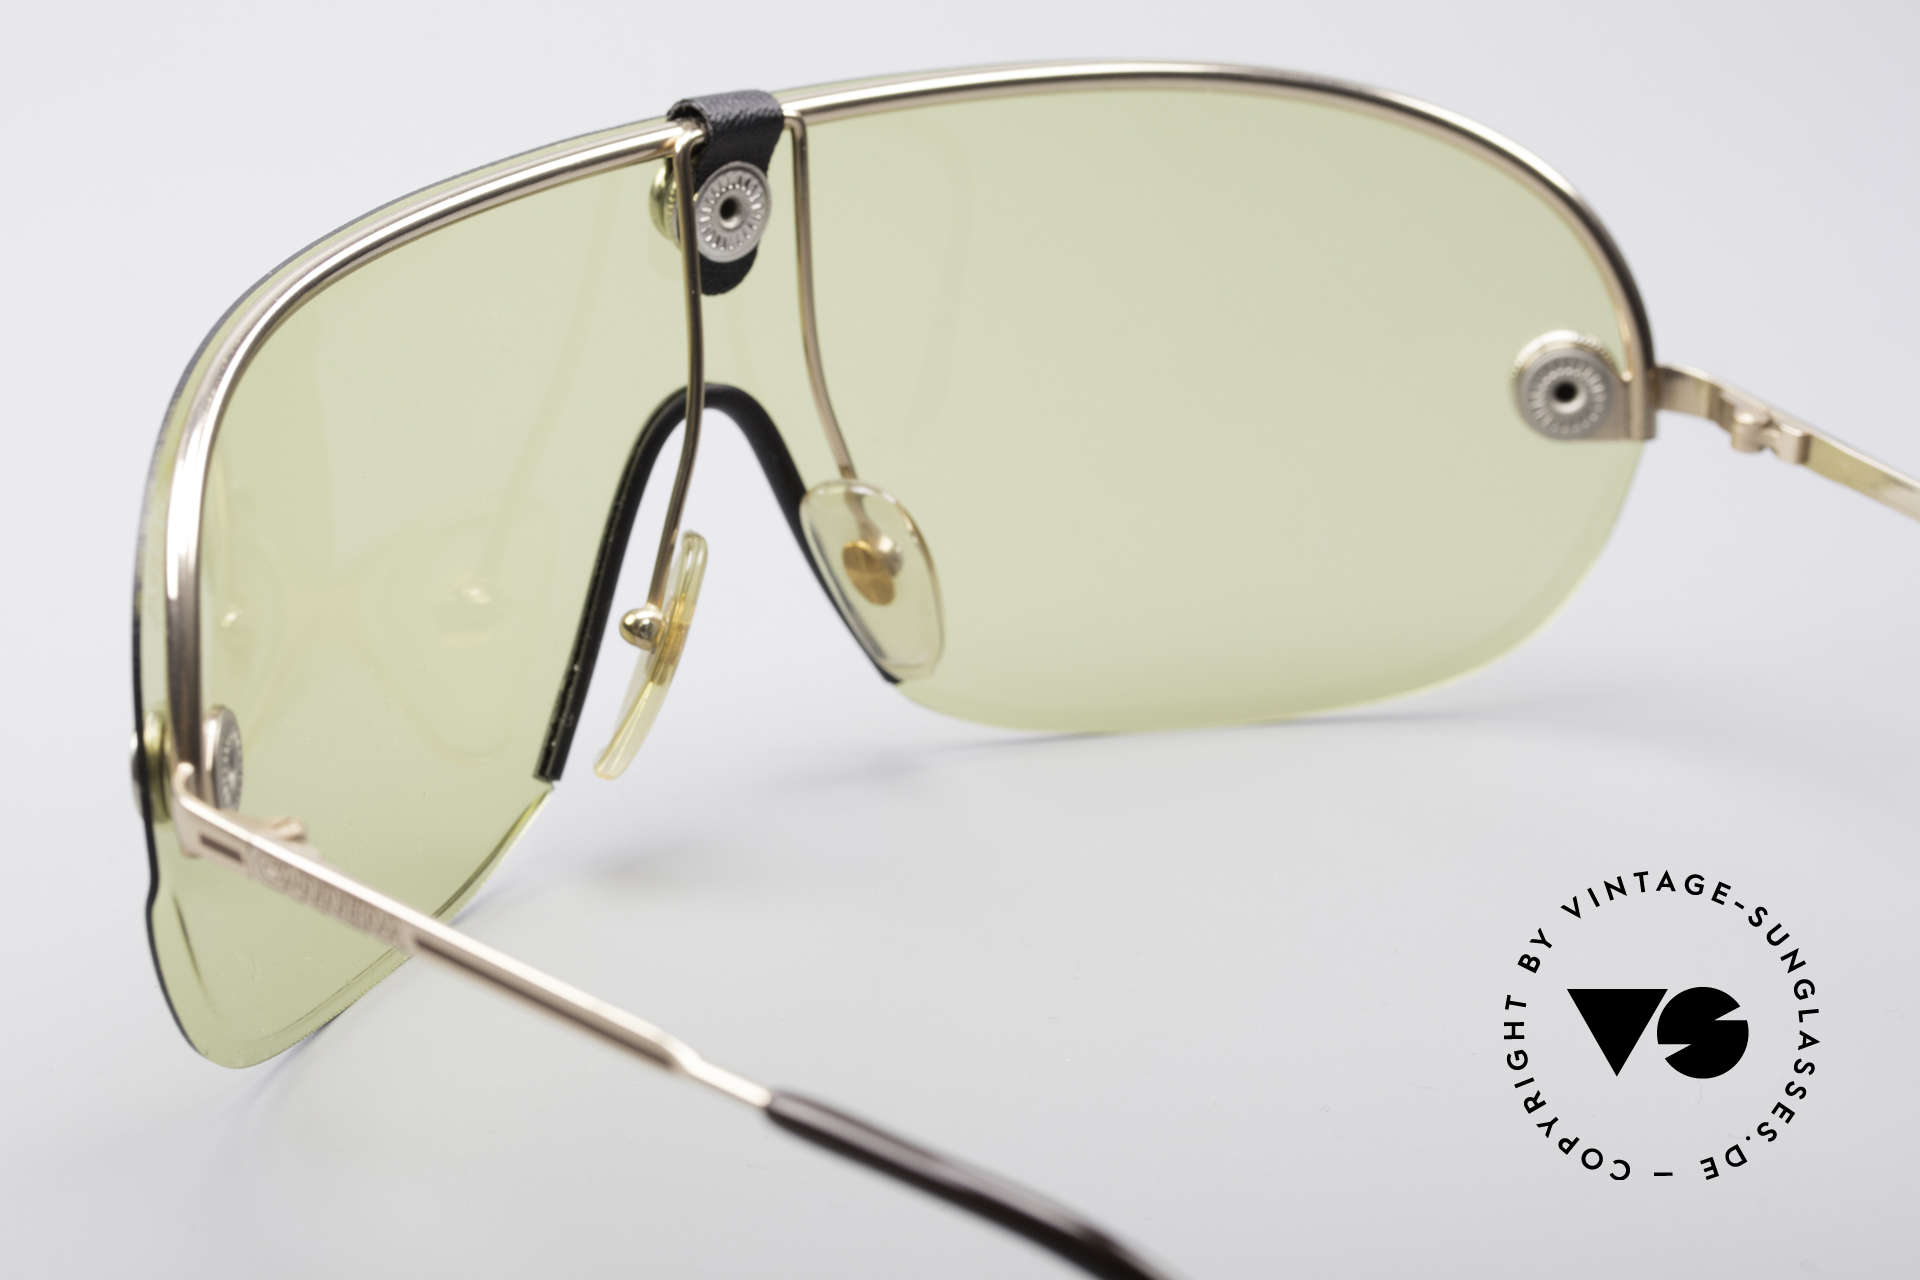 Carrera 5418 All Weather Sunglasses, yellow lens wearable at dusk and bown lens at daytime, Made for Men